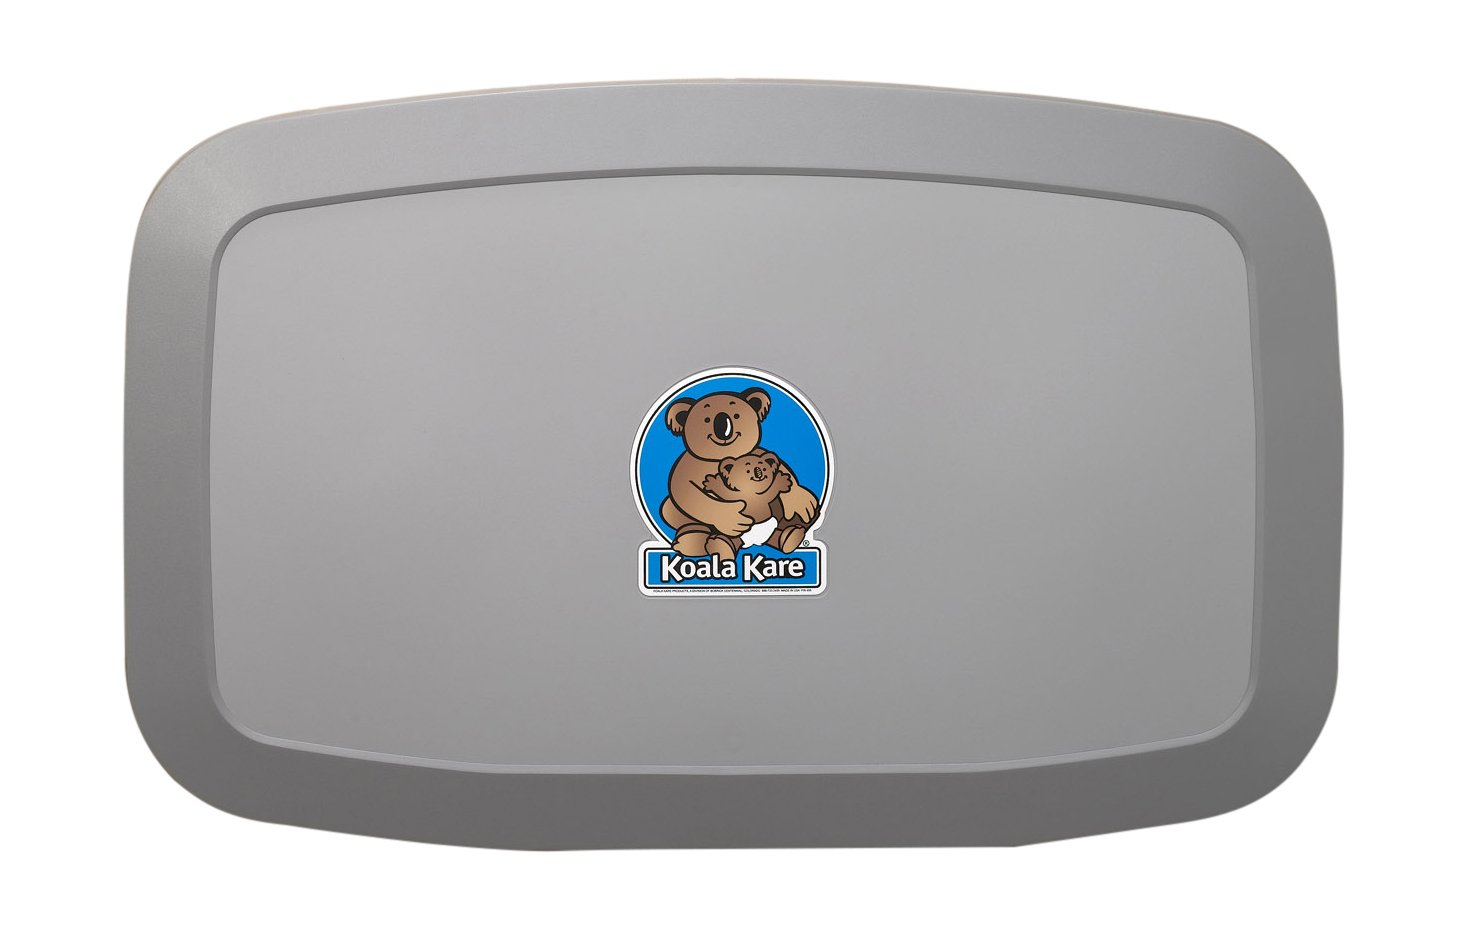 Koala Kare KB200-01 Horizontal Wall Mounted Baby Changing Station, Grey